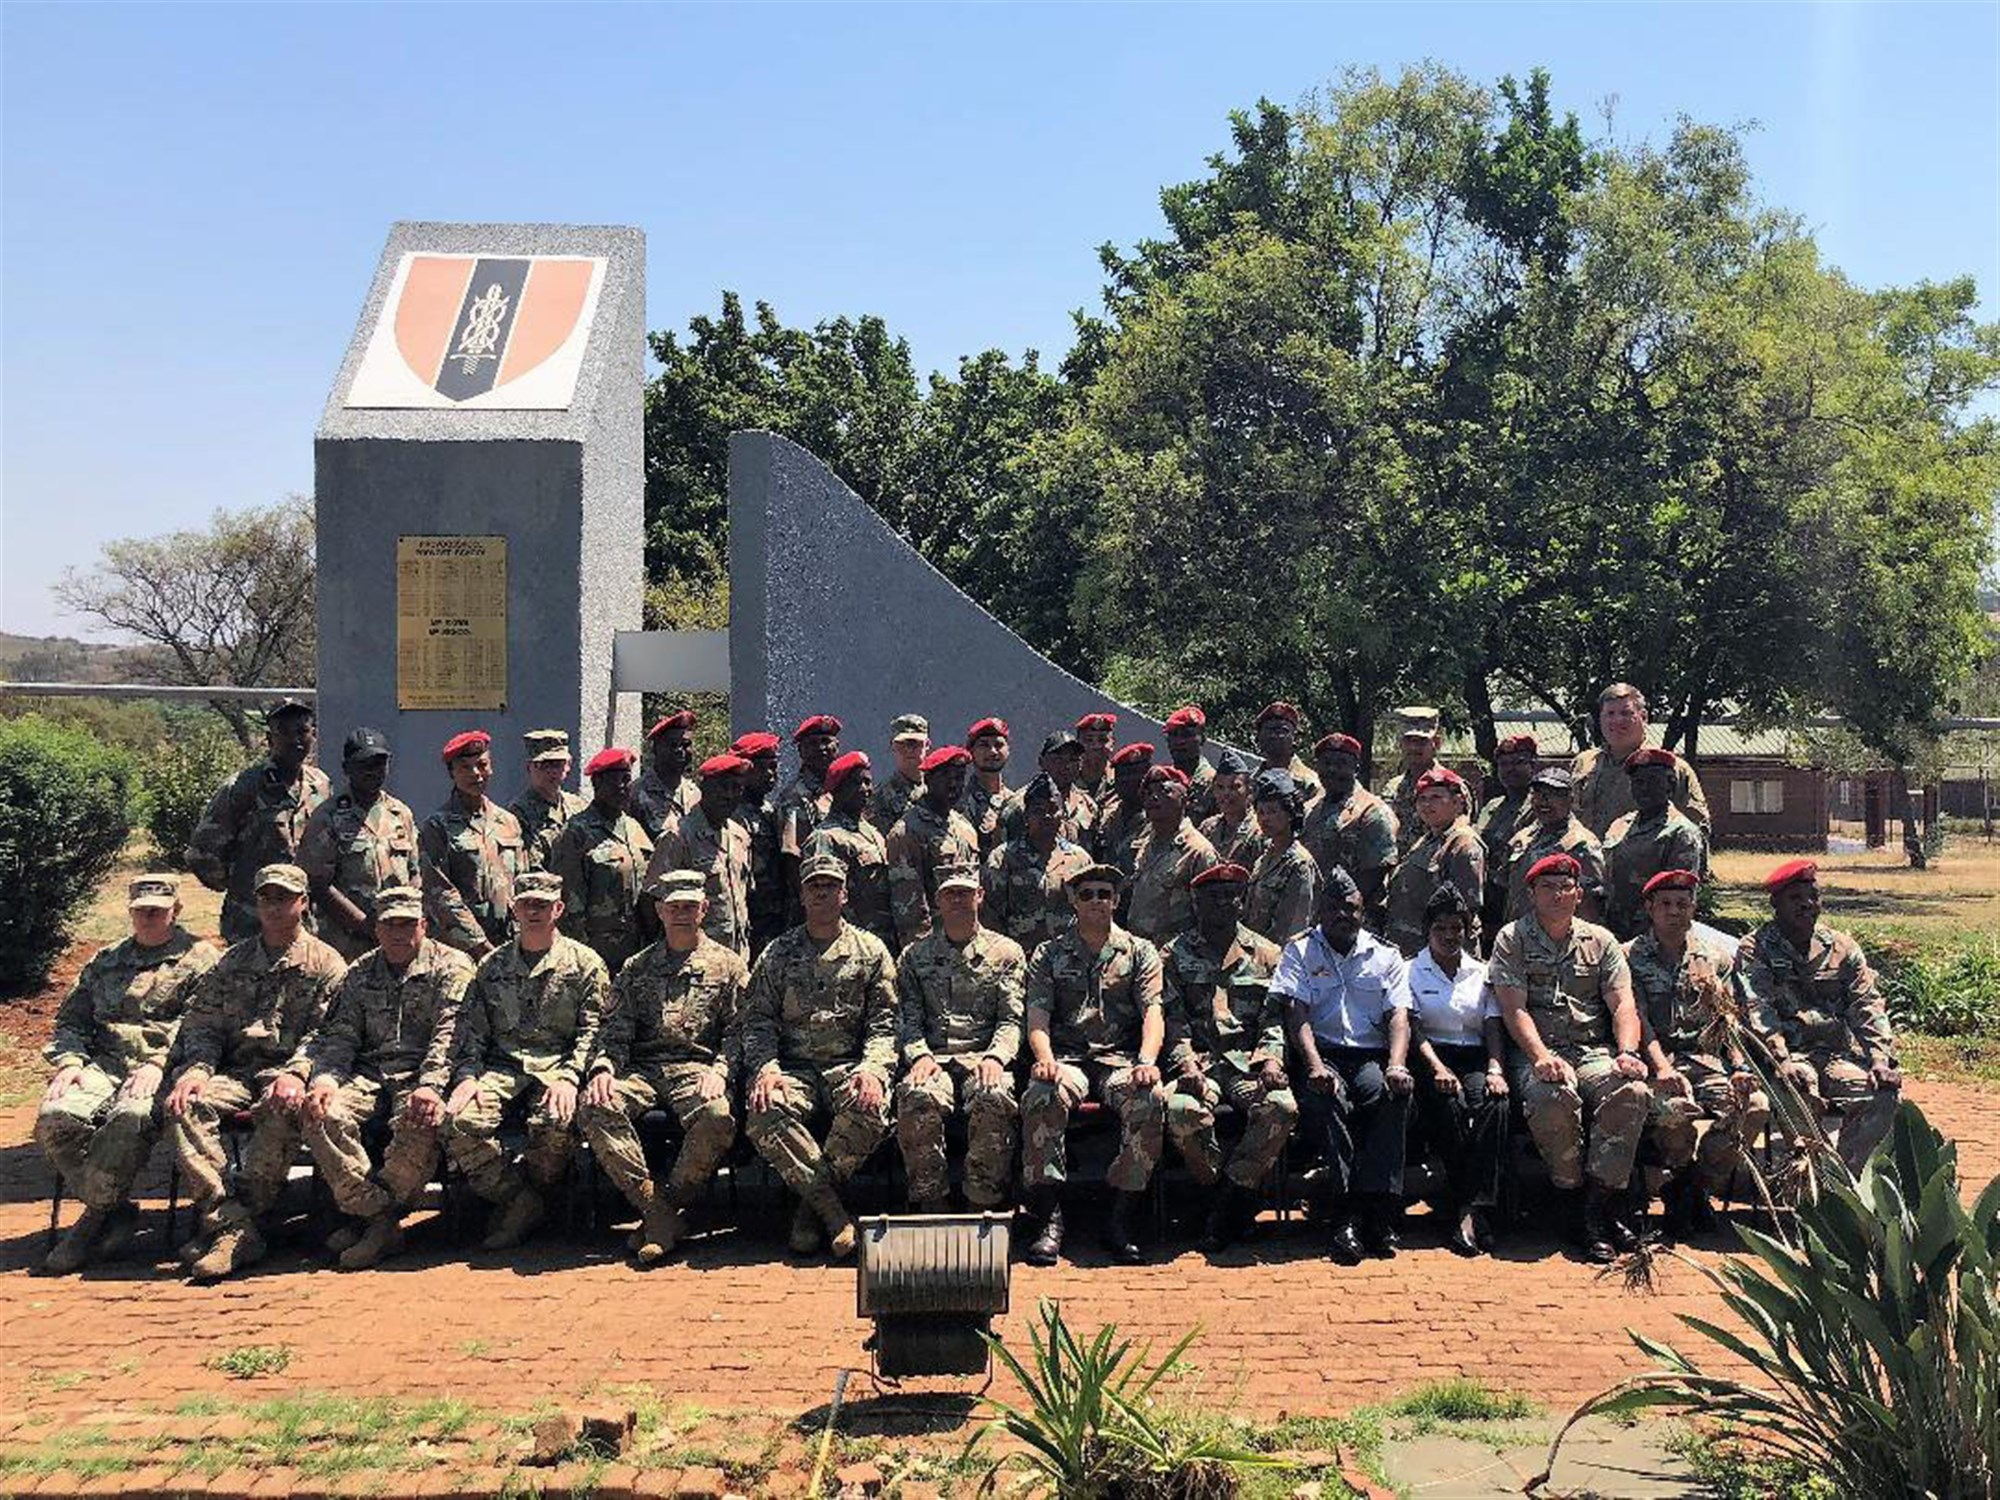 Soldiers from the New York Army National Guard pose with their hosts during an exchange program at the South African National Defense Forces Military Police School during an exchange visit there on Oct. 10-11, 2018. Twelve New York Army National Guard experts in civil support operations, military police, law enforcement, and self-defense took part in the exchange visit. ( U.S. Army National Guard photo by Major Al Phillips)